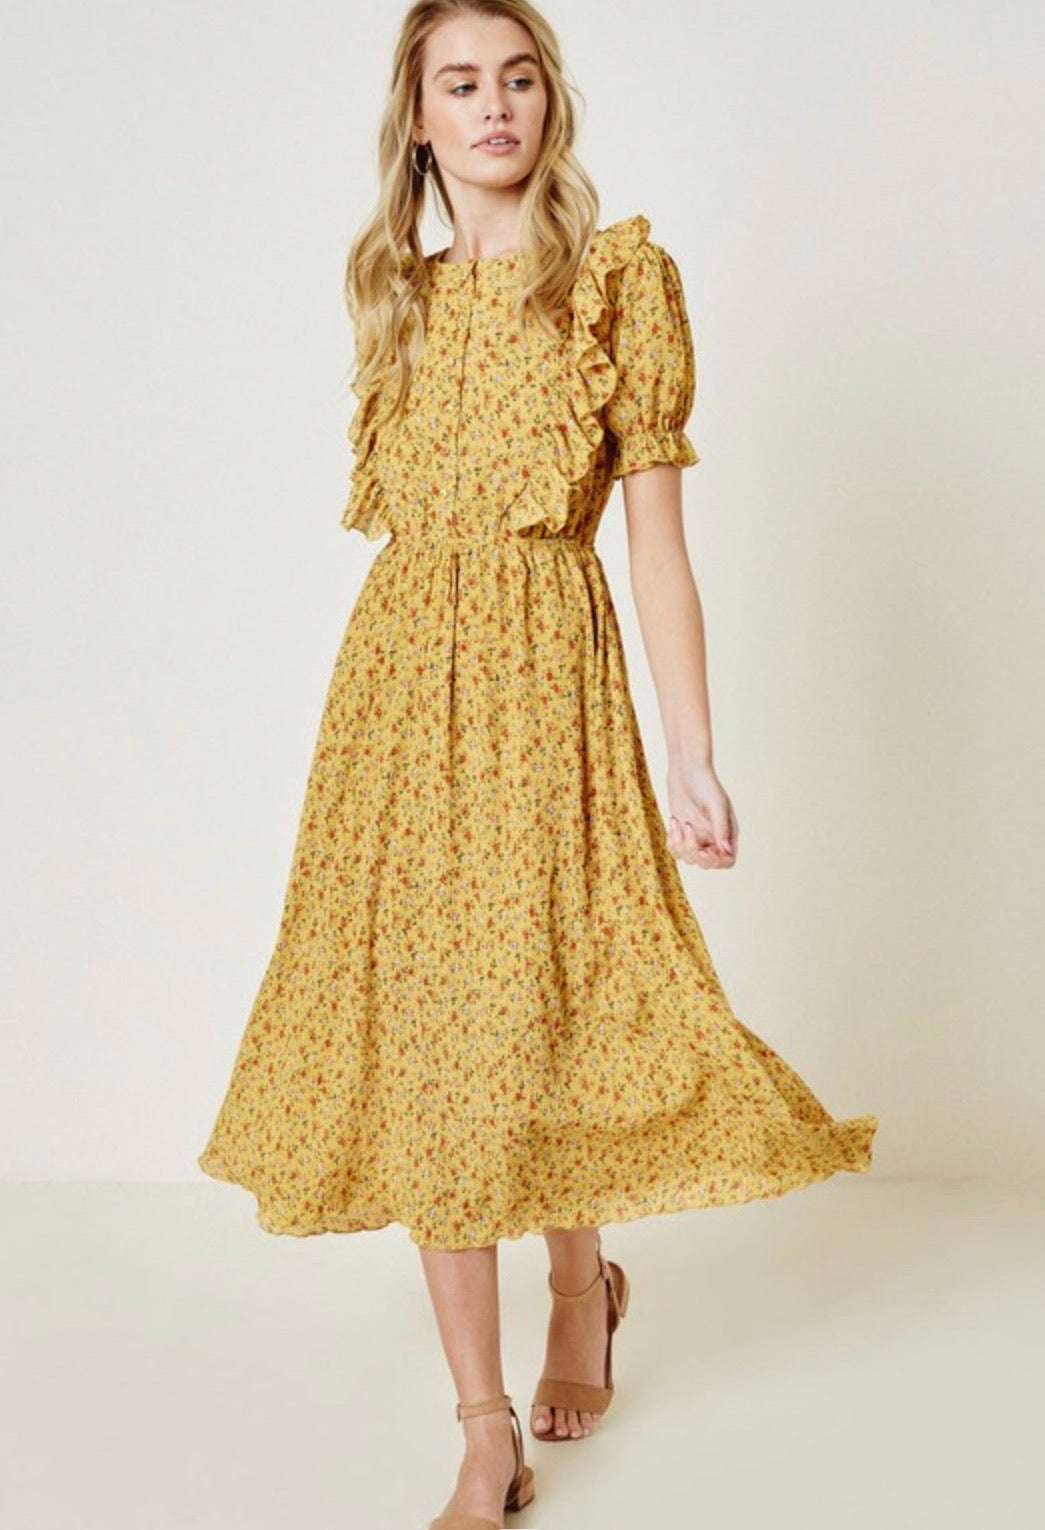 Lucerne yellow ruffled calico dress